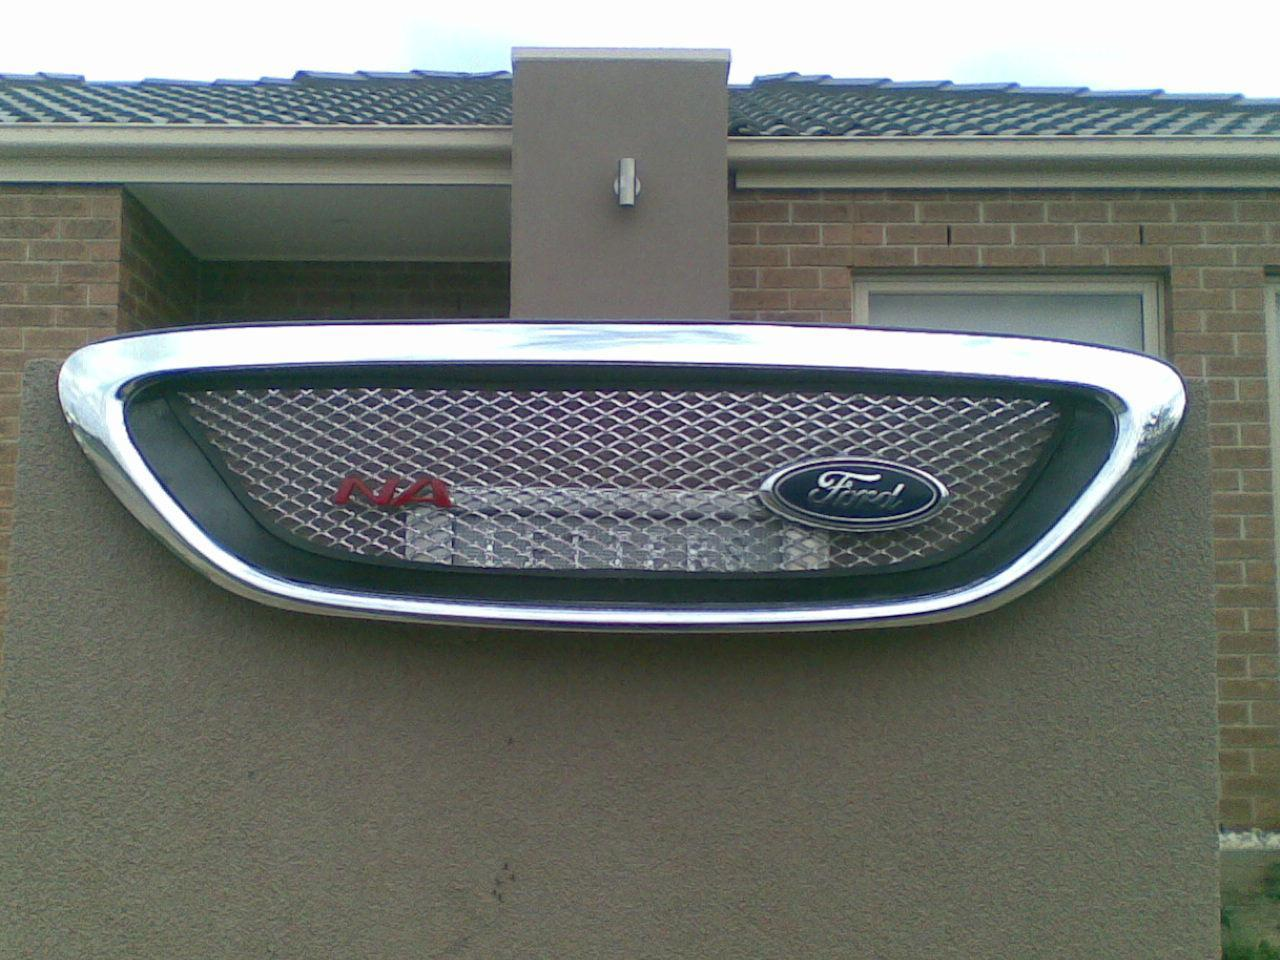 new grille.JPG